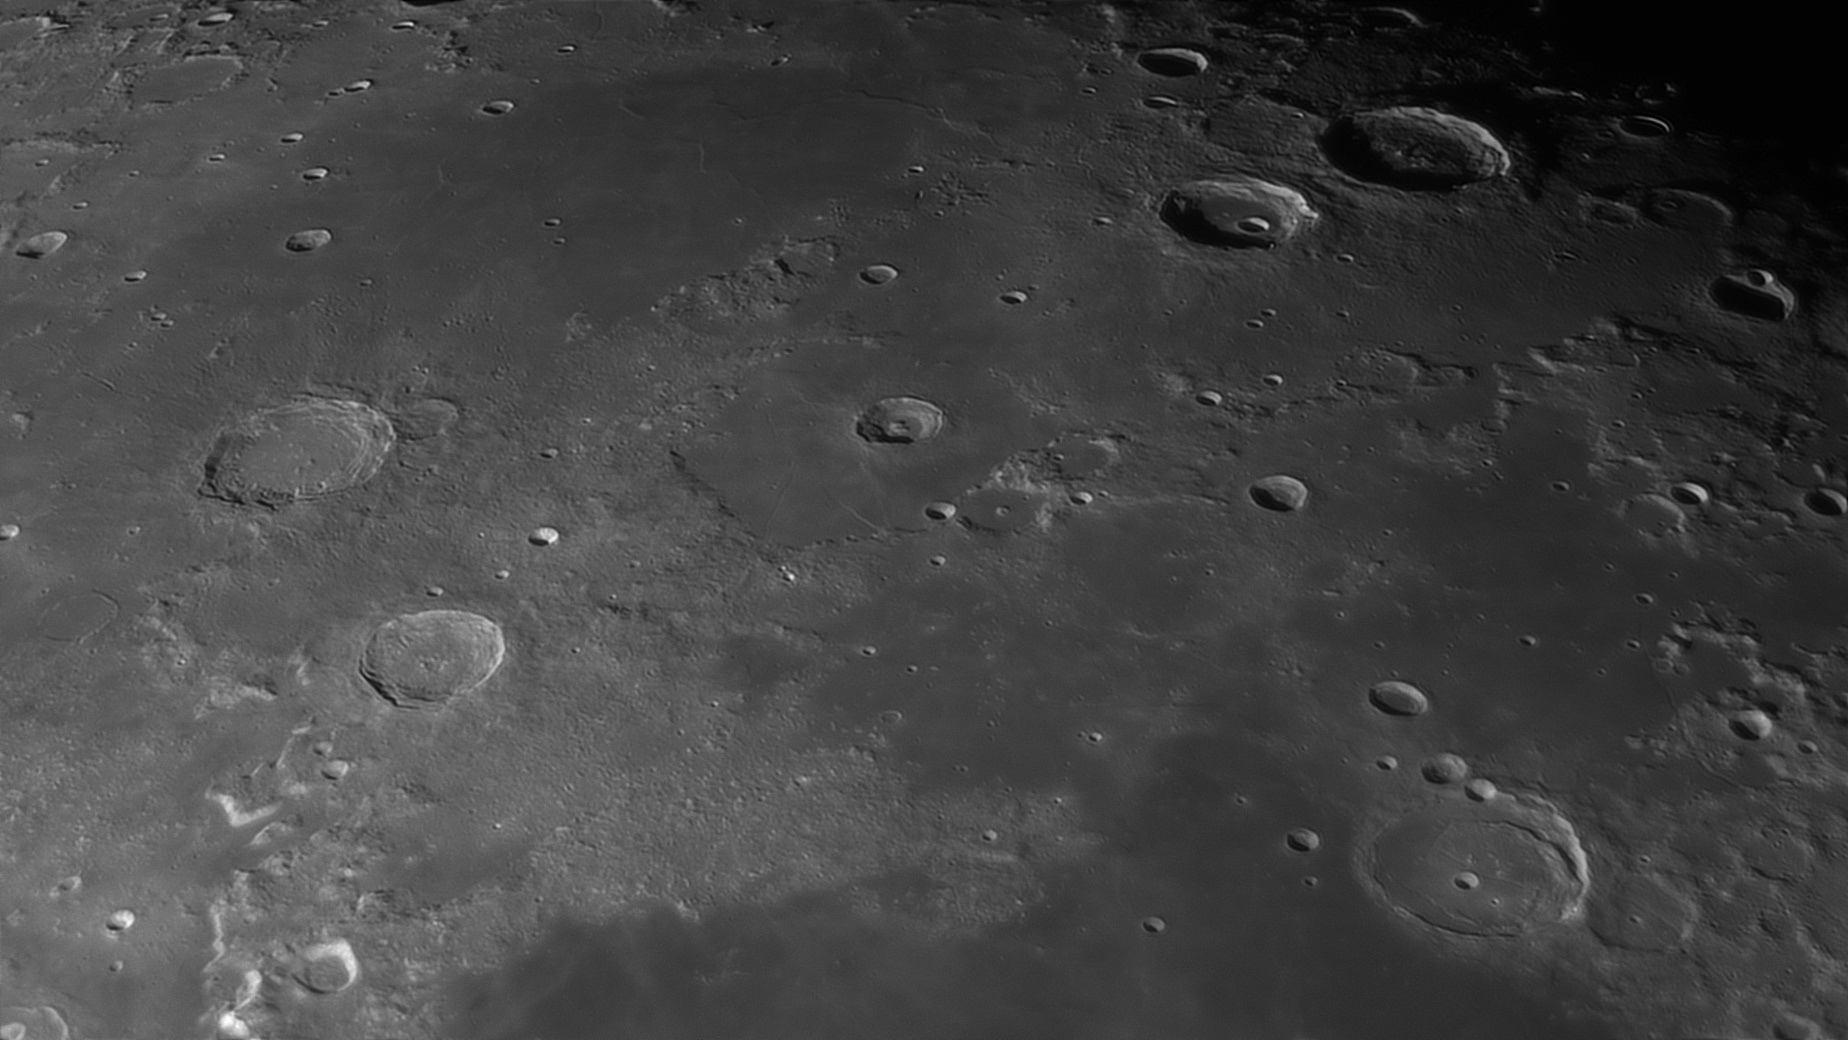 5e56c9abafae1_Moon_055835_120220_ZWOASI290MM_IR_742nm_AS_P30_lapl4_ap1296_AI_Deconvolution_7.jpg.1bda7fe41c7afdcad28d020d63eeb3e5.jpg